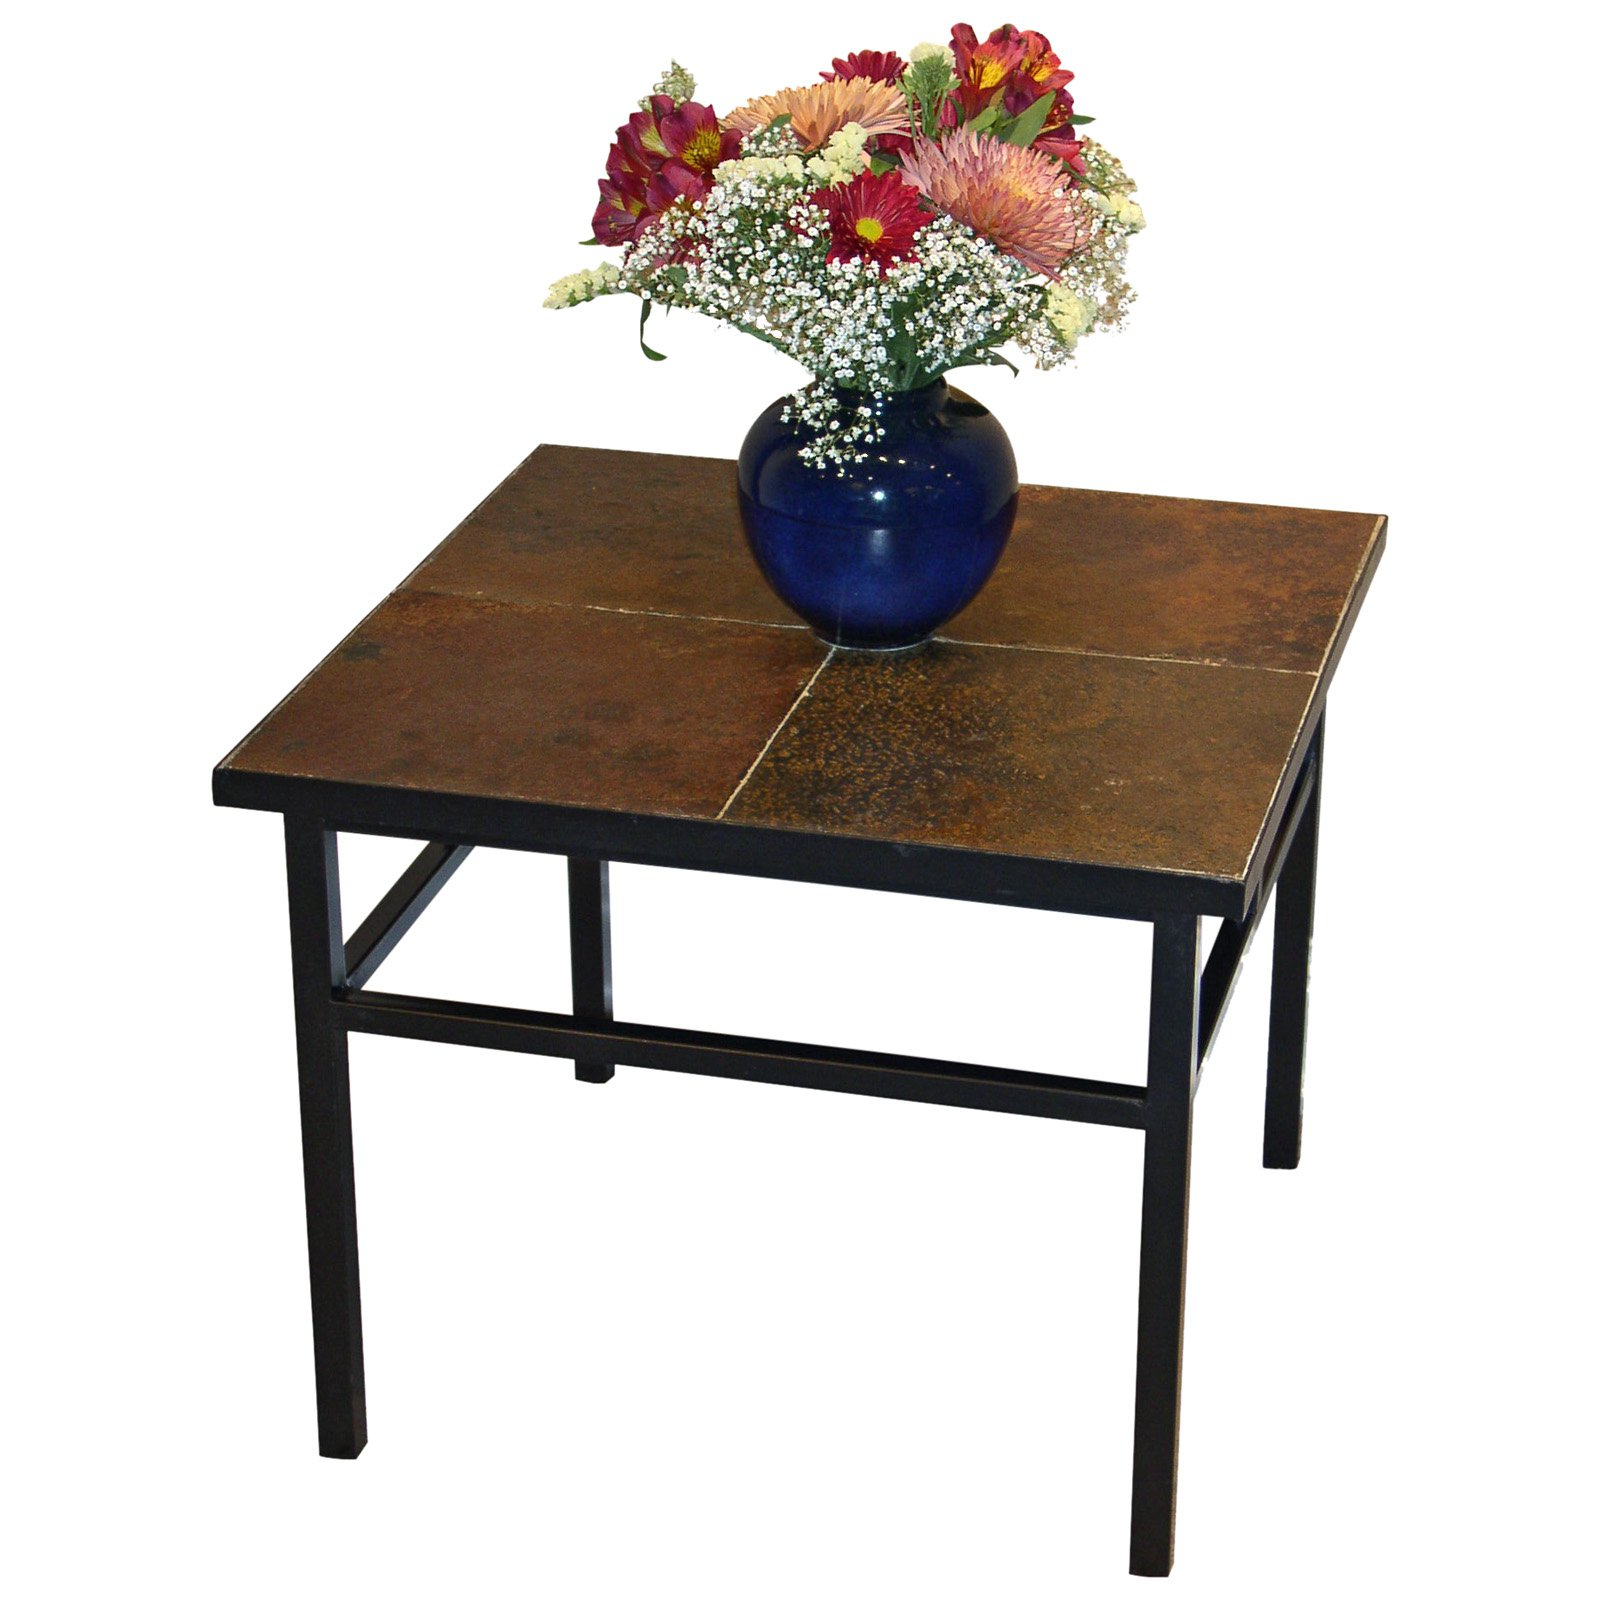 4D Concepts Slate End Table   Walmart.com